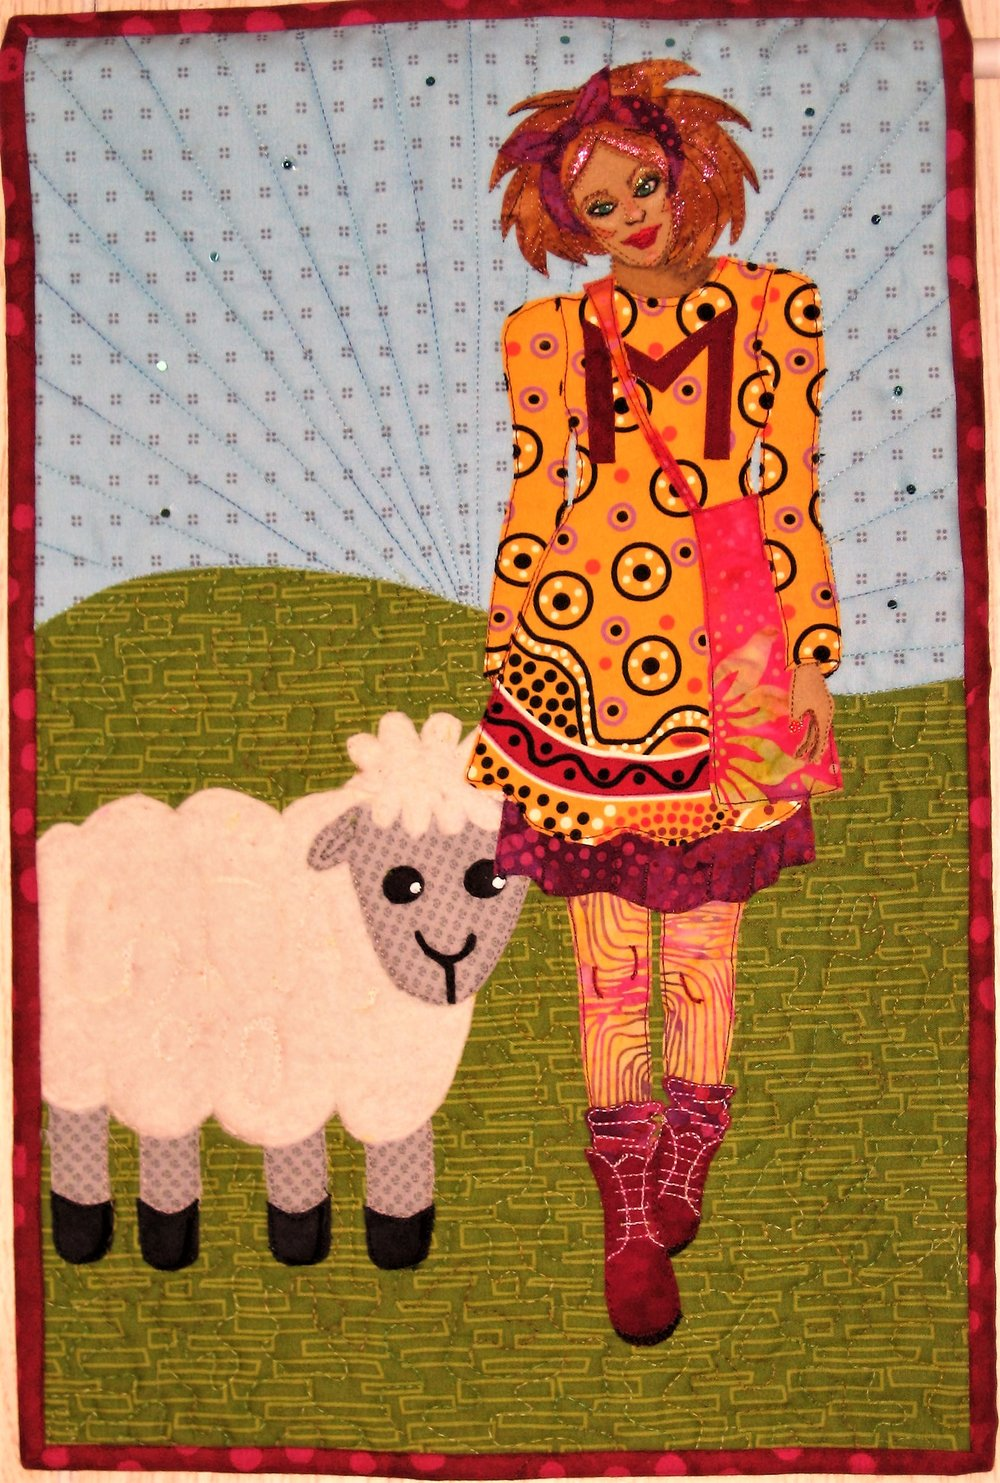 "My Facebook art quilt group Art Quilts Around The World has it's reveal today. The theme is nursery rhymes with a back story or plot twist. I chose Mary Had a Little Lamb and the lamb was co-dependent and that's why she followed Mary to school!! Haha!! I decided to make Mary a high school student with a cute fit and flare dress and petticoat, leggings, slouch sox and Doc Martin boots! I selected the local Menominee high school colors of maroon and gold for the color scheme of Mary's outfit. Locally anyone supporting the local high school wears a maroon ""M"" on the front of their dress/tee shirt etc. The ""M"" could also represent Mary's first name initial.  The lamb was created by me Googling lamb clip art since I didn't really know what a lamb looks like. For the fleece I used quilt batt-not ""as white as snow"" but I loved the fuzzy texture! I thread painted CoDA.org on the lamb's body to share about the national organization which helps people (lambs?!) with co-dependency.  I had fun stitching the details of Mary's garment especially the boot details."